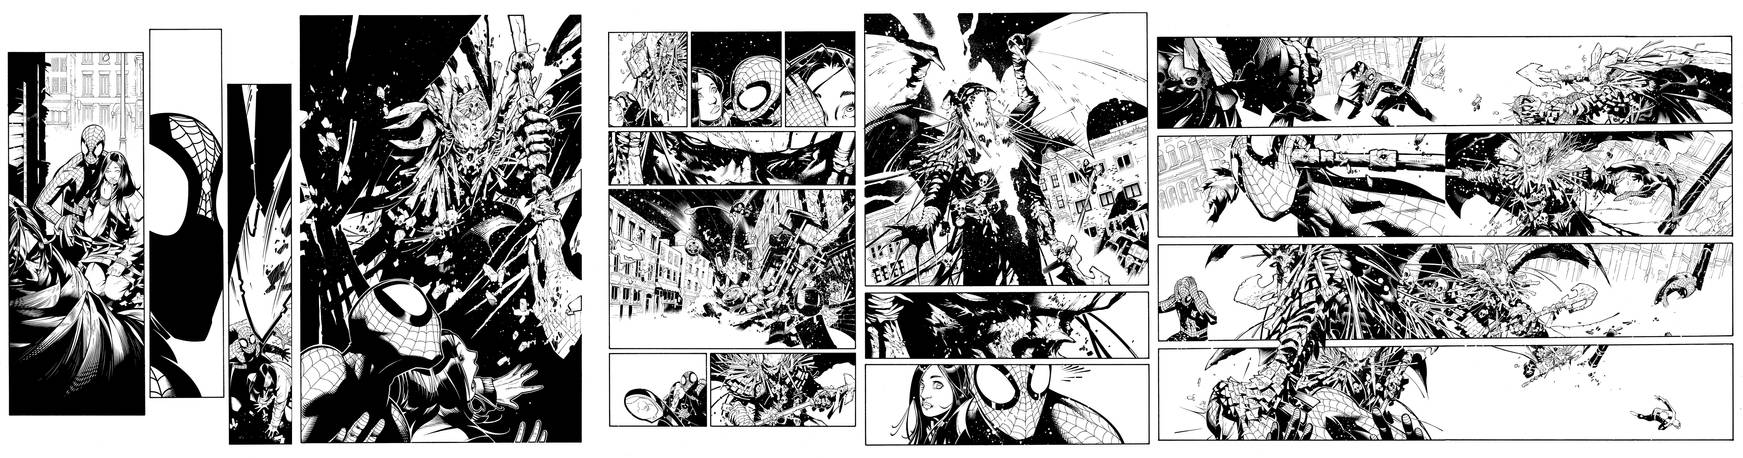 Amazing Spider-Man 557 pages